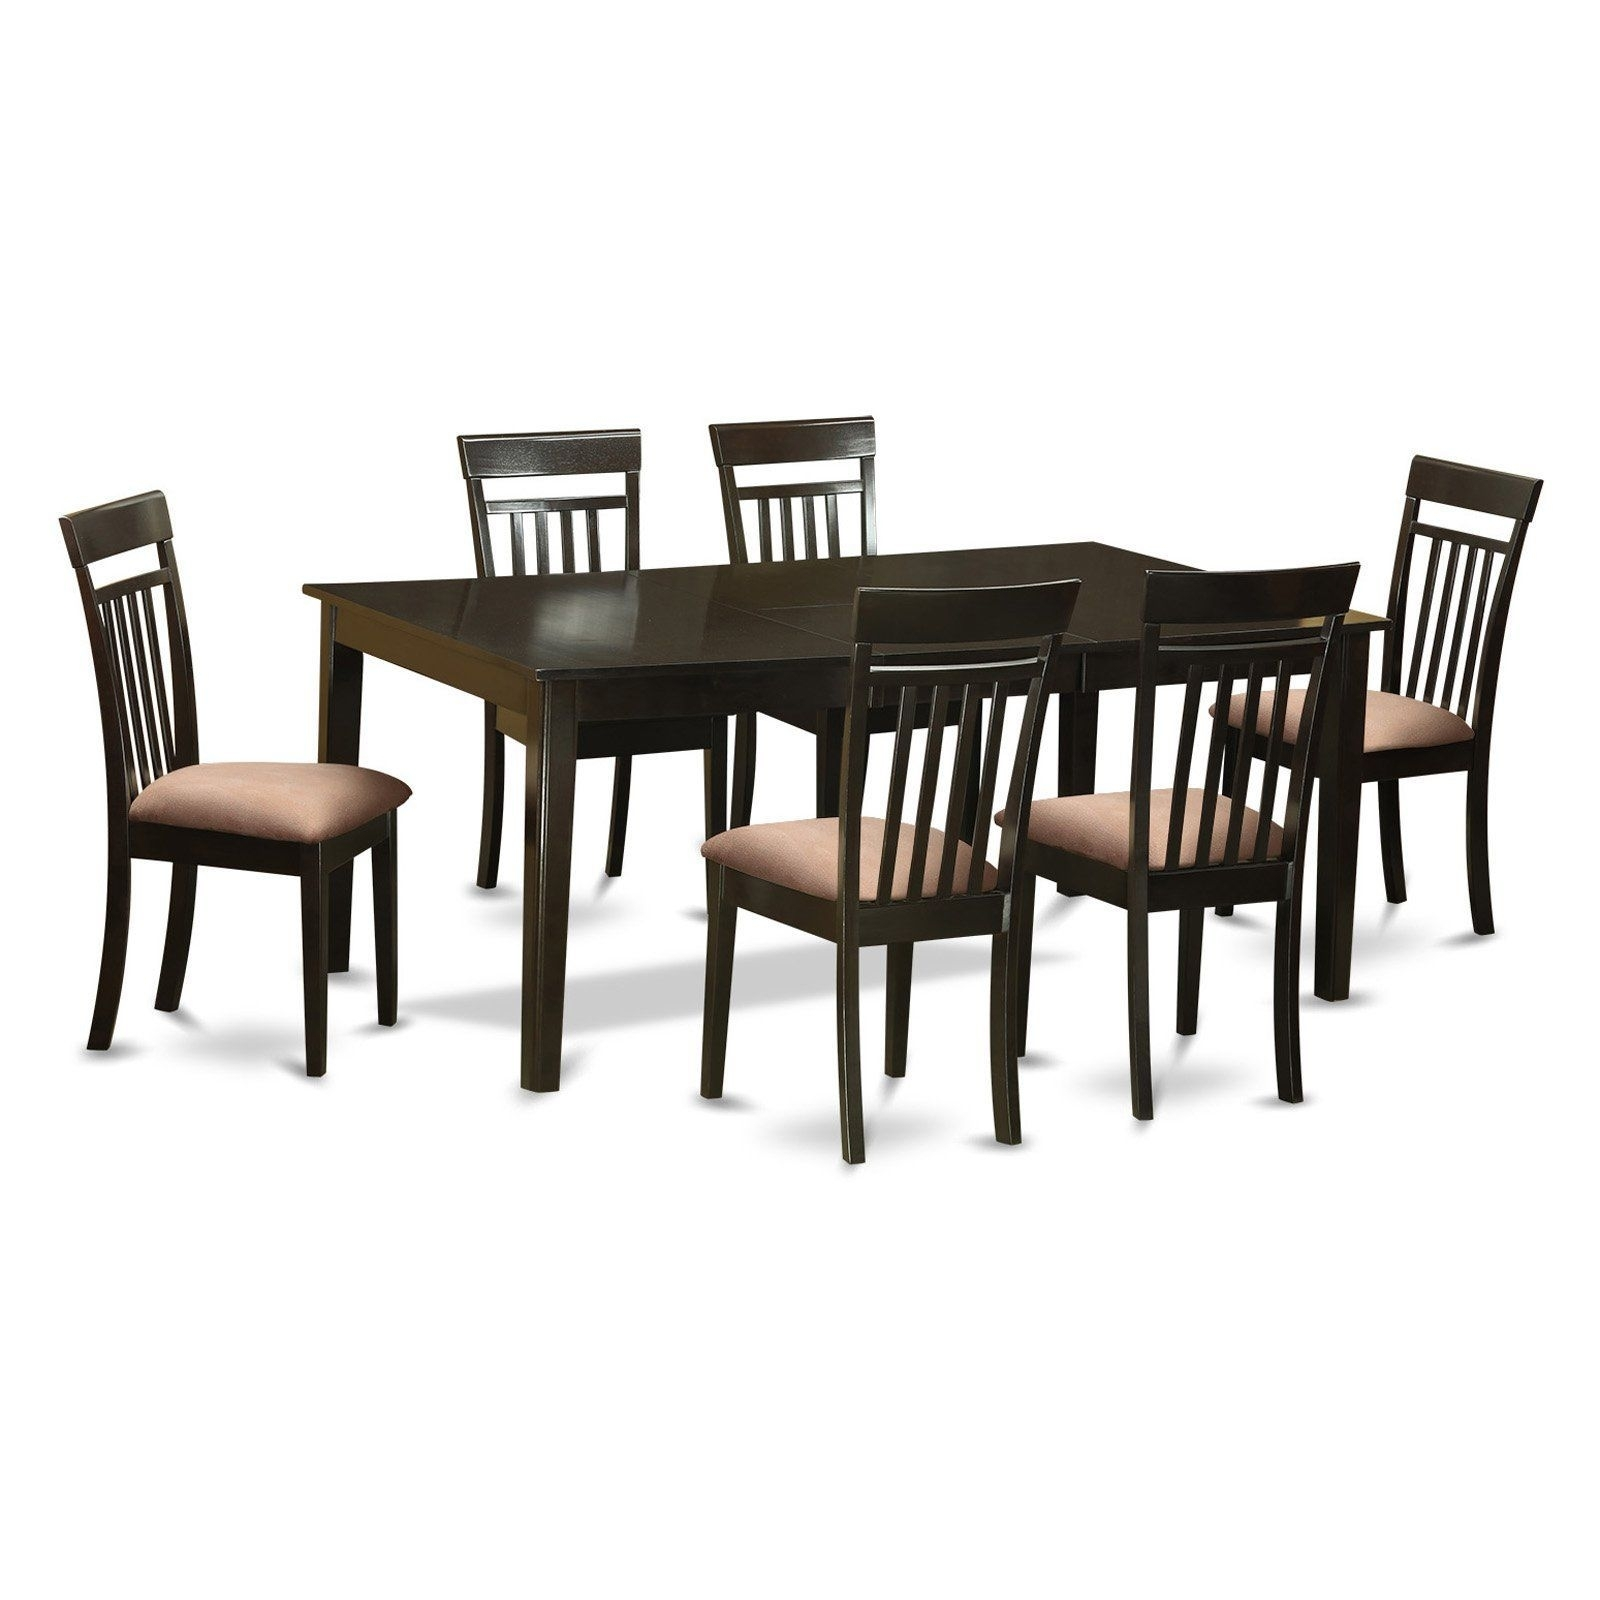 East West Furniture Henley 7 Piece Extension Dining Table Set With In Best And Newest Rocco 7 Piece Extension Dining Sets (Image 6 of 20)